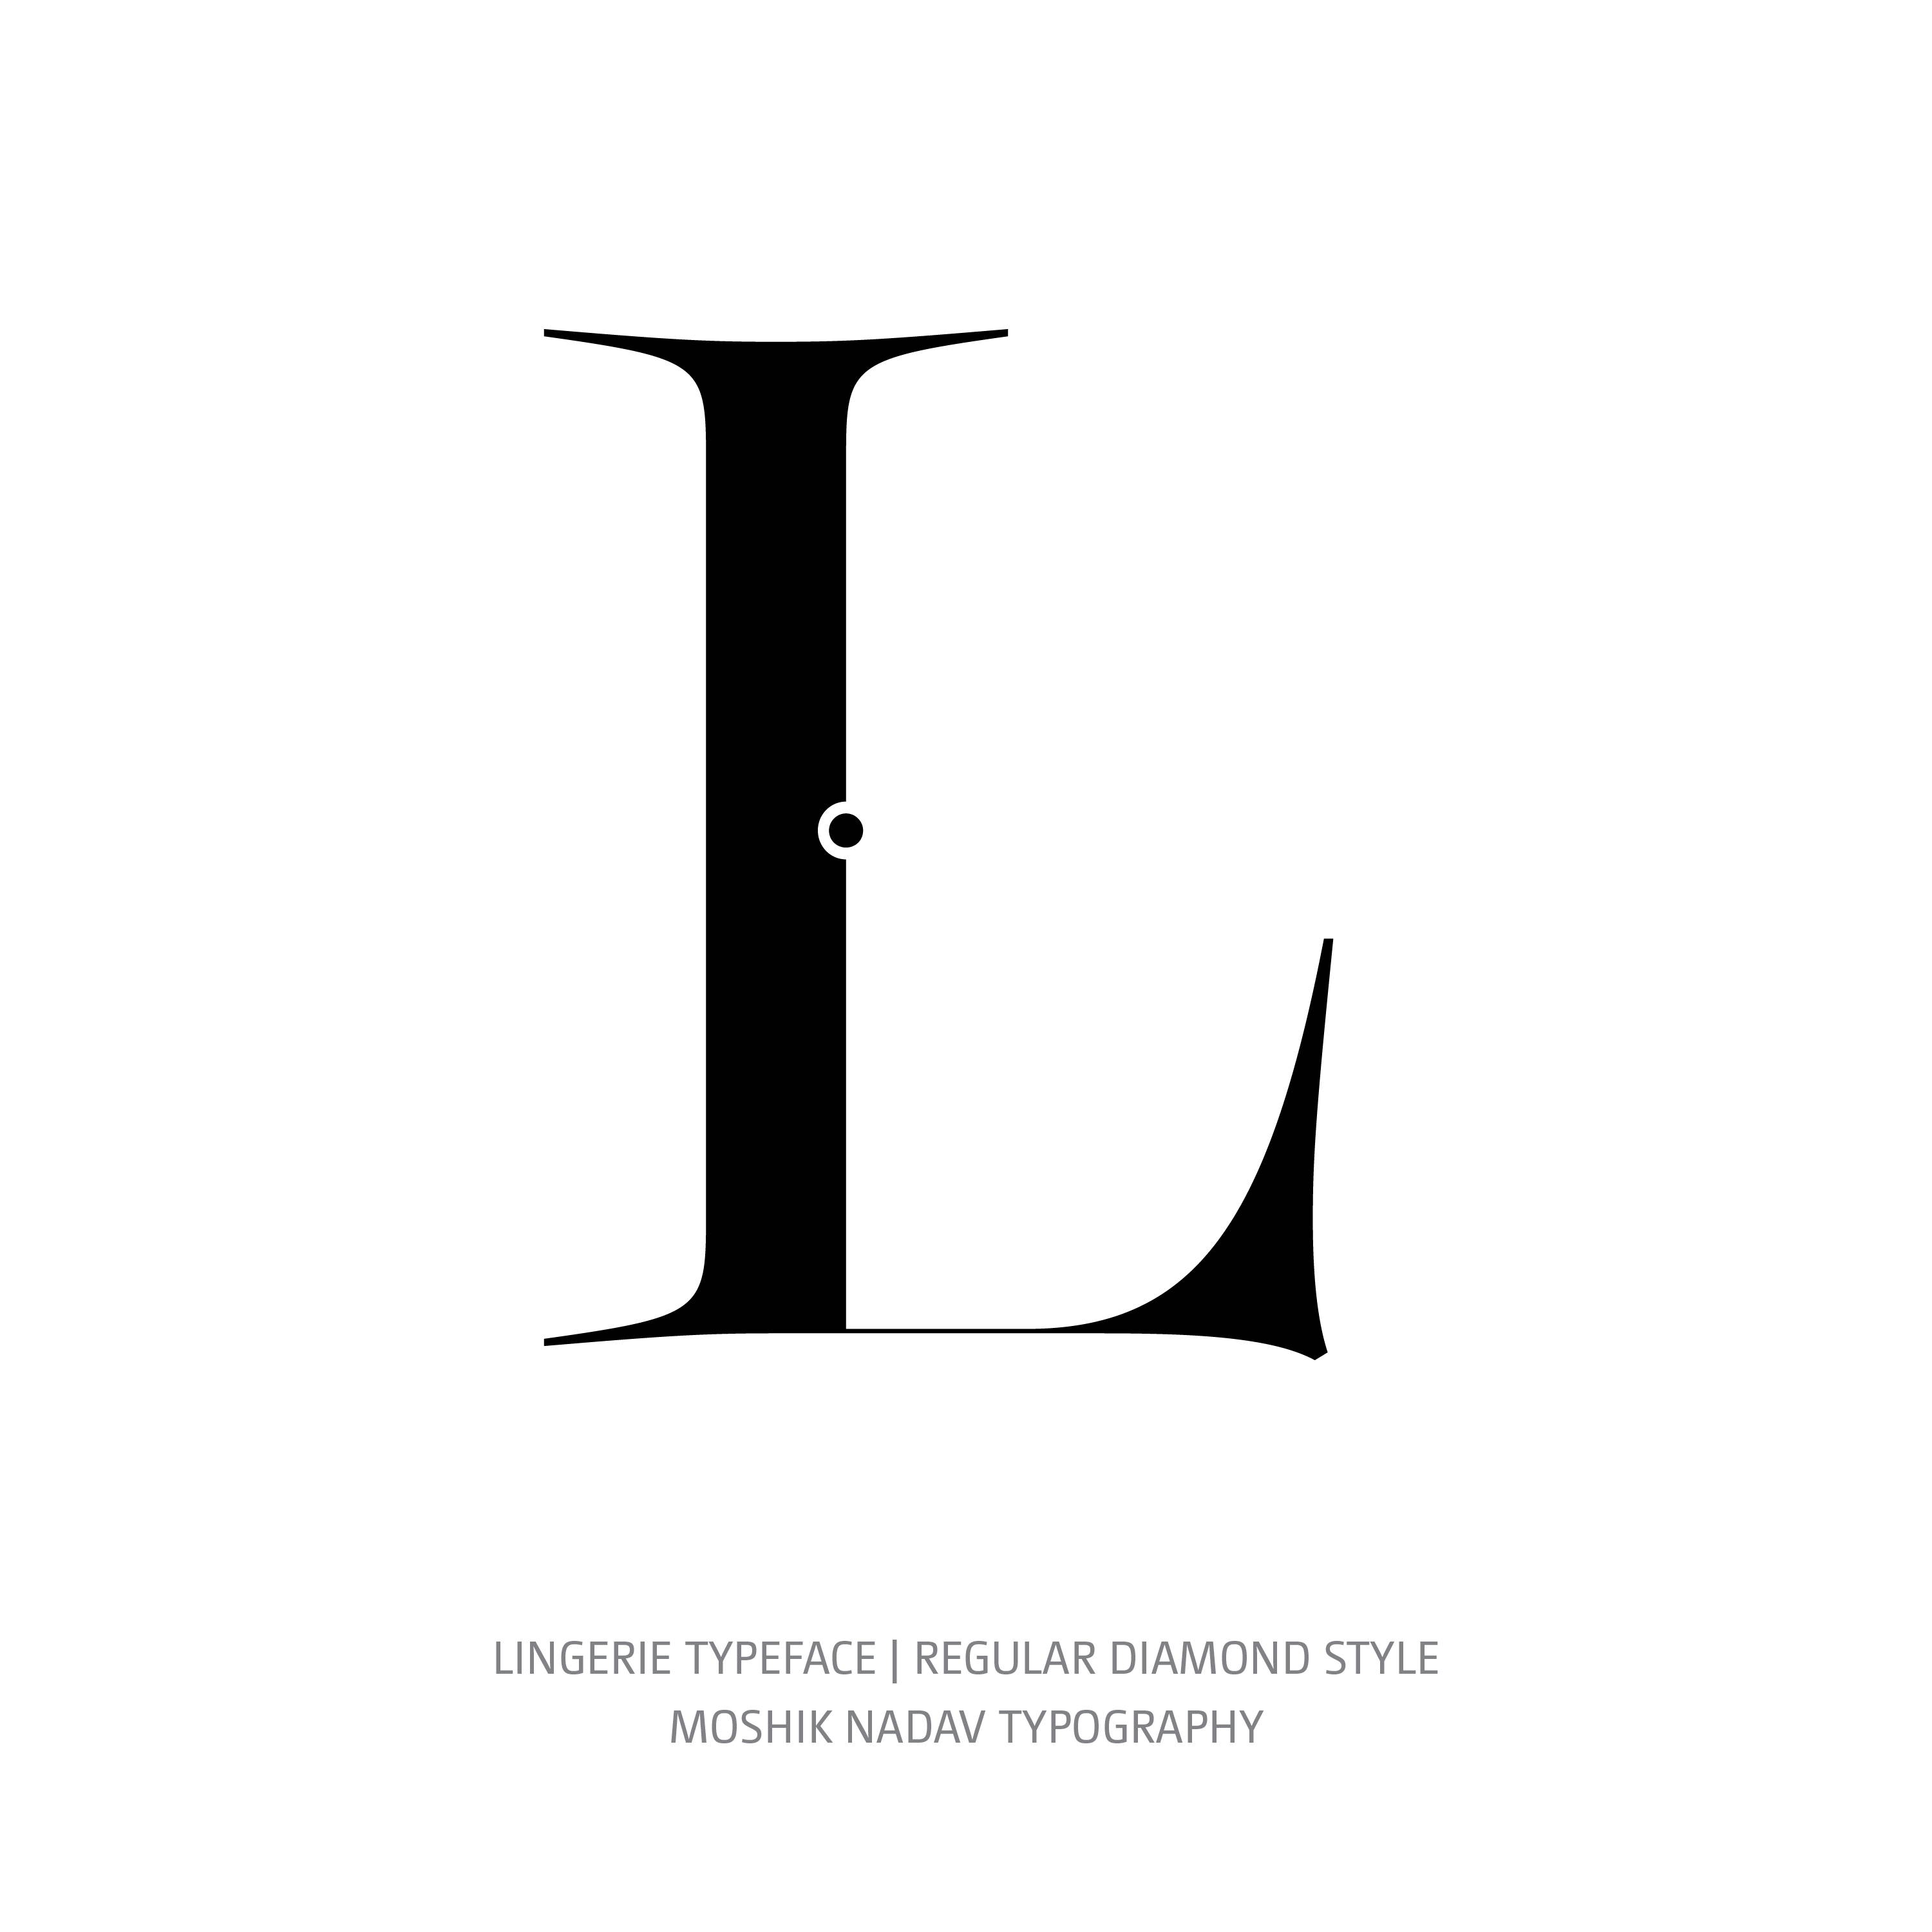 Lingerie Typeface Regular Diamond L